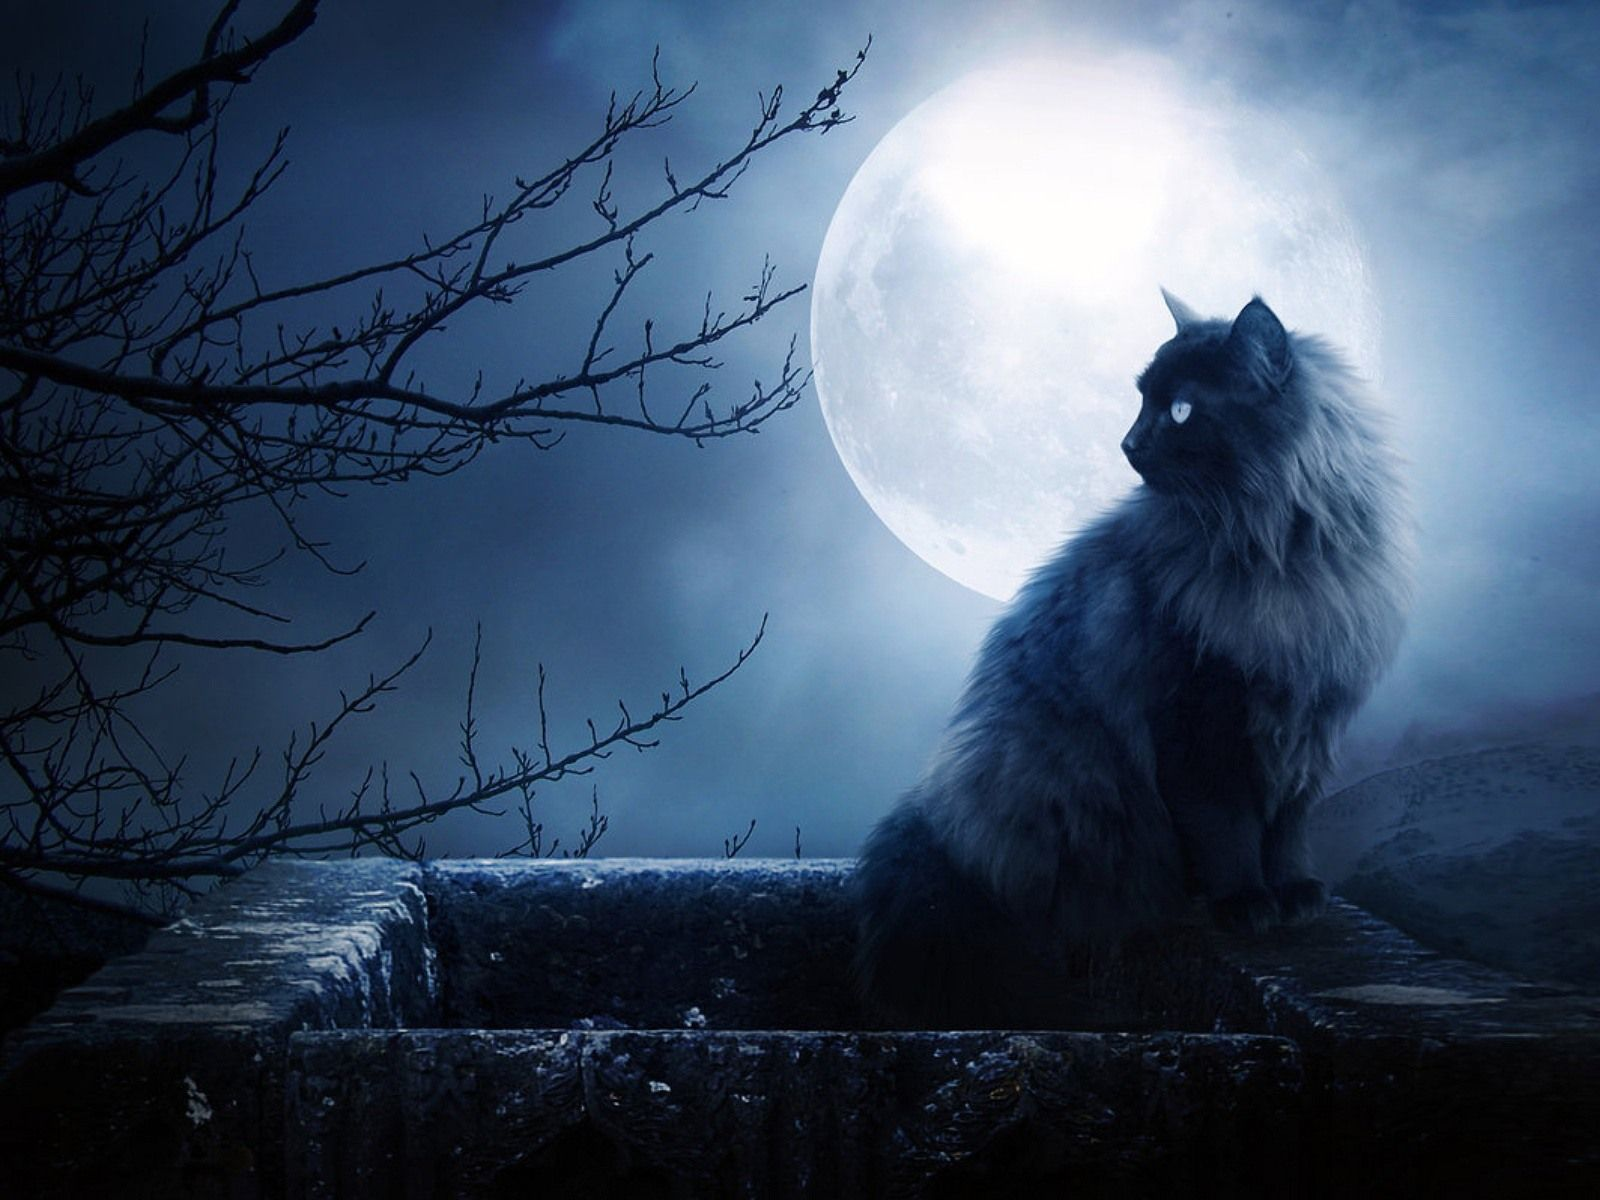 Beautiful Wallpaper Night Cat - b81498e6f61ca4f5ecf0307f8e16d462  Gallery.jpg